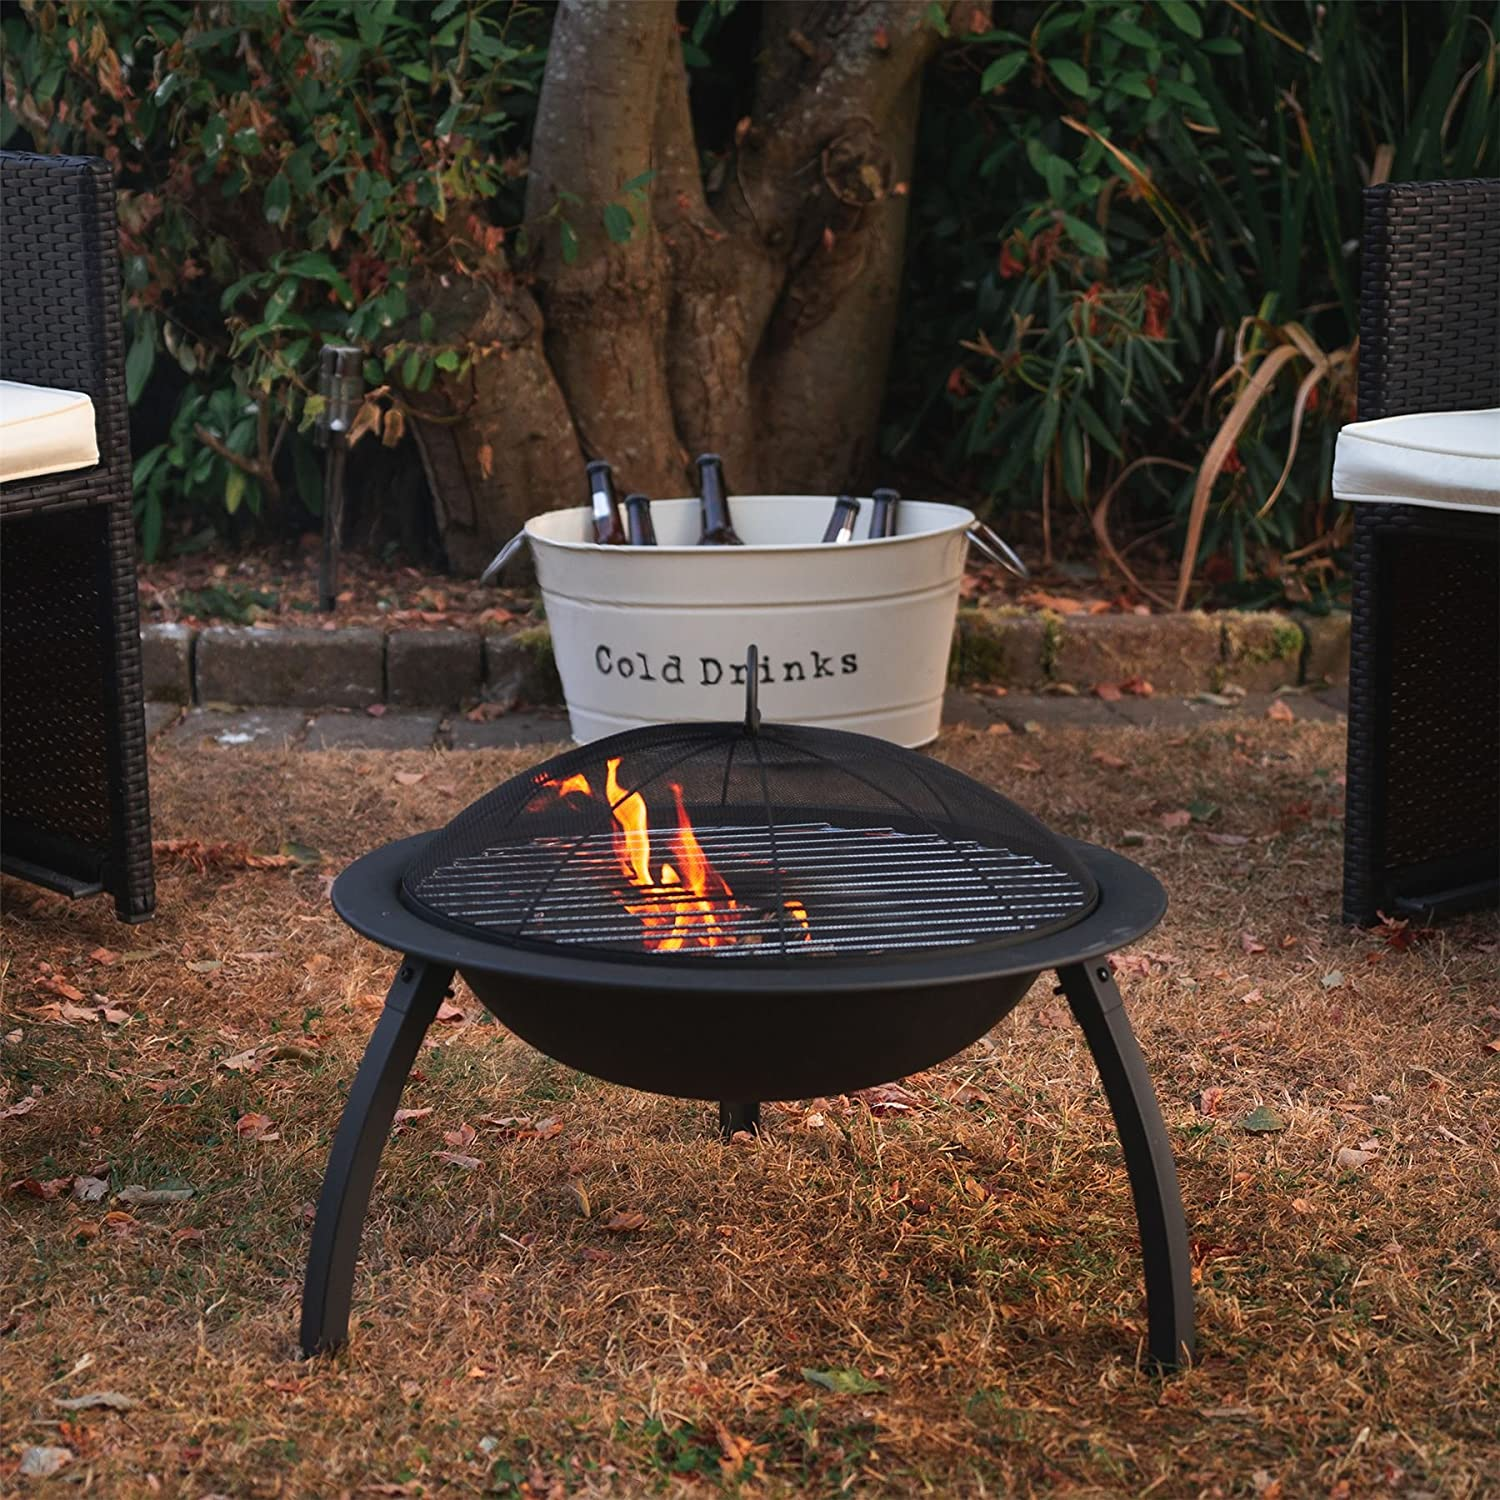 Outdoor Garden Patio Heater Camping Bowl for Wood Charcoal Harbour Housewares Fire Pit BBQ with Grill 54cm Diameter